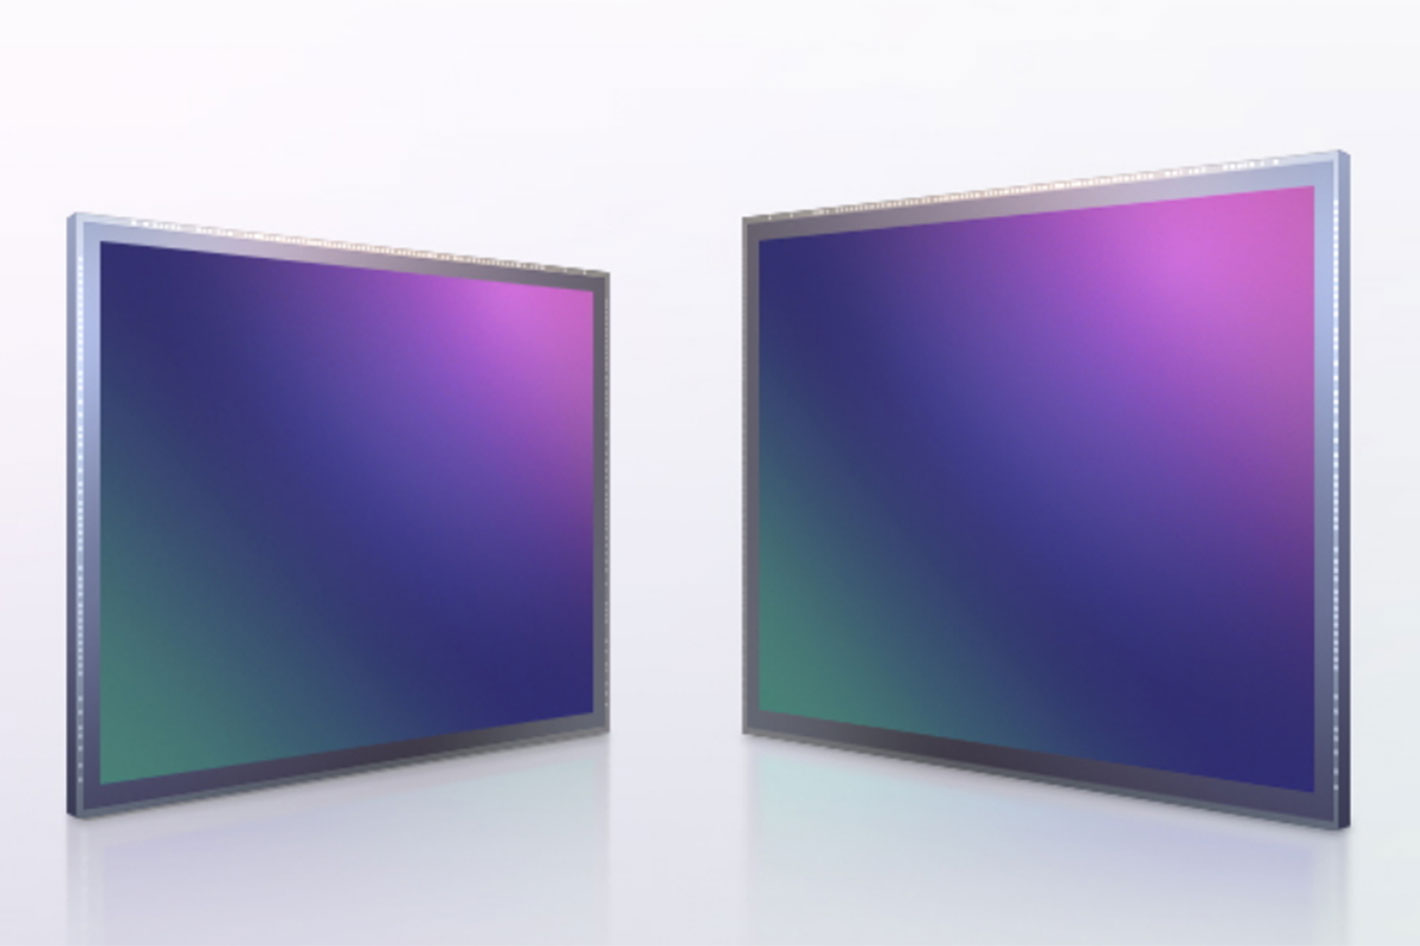 Samsung ISOCELL HP1: a 200MP sensor for smartphones 3